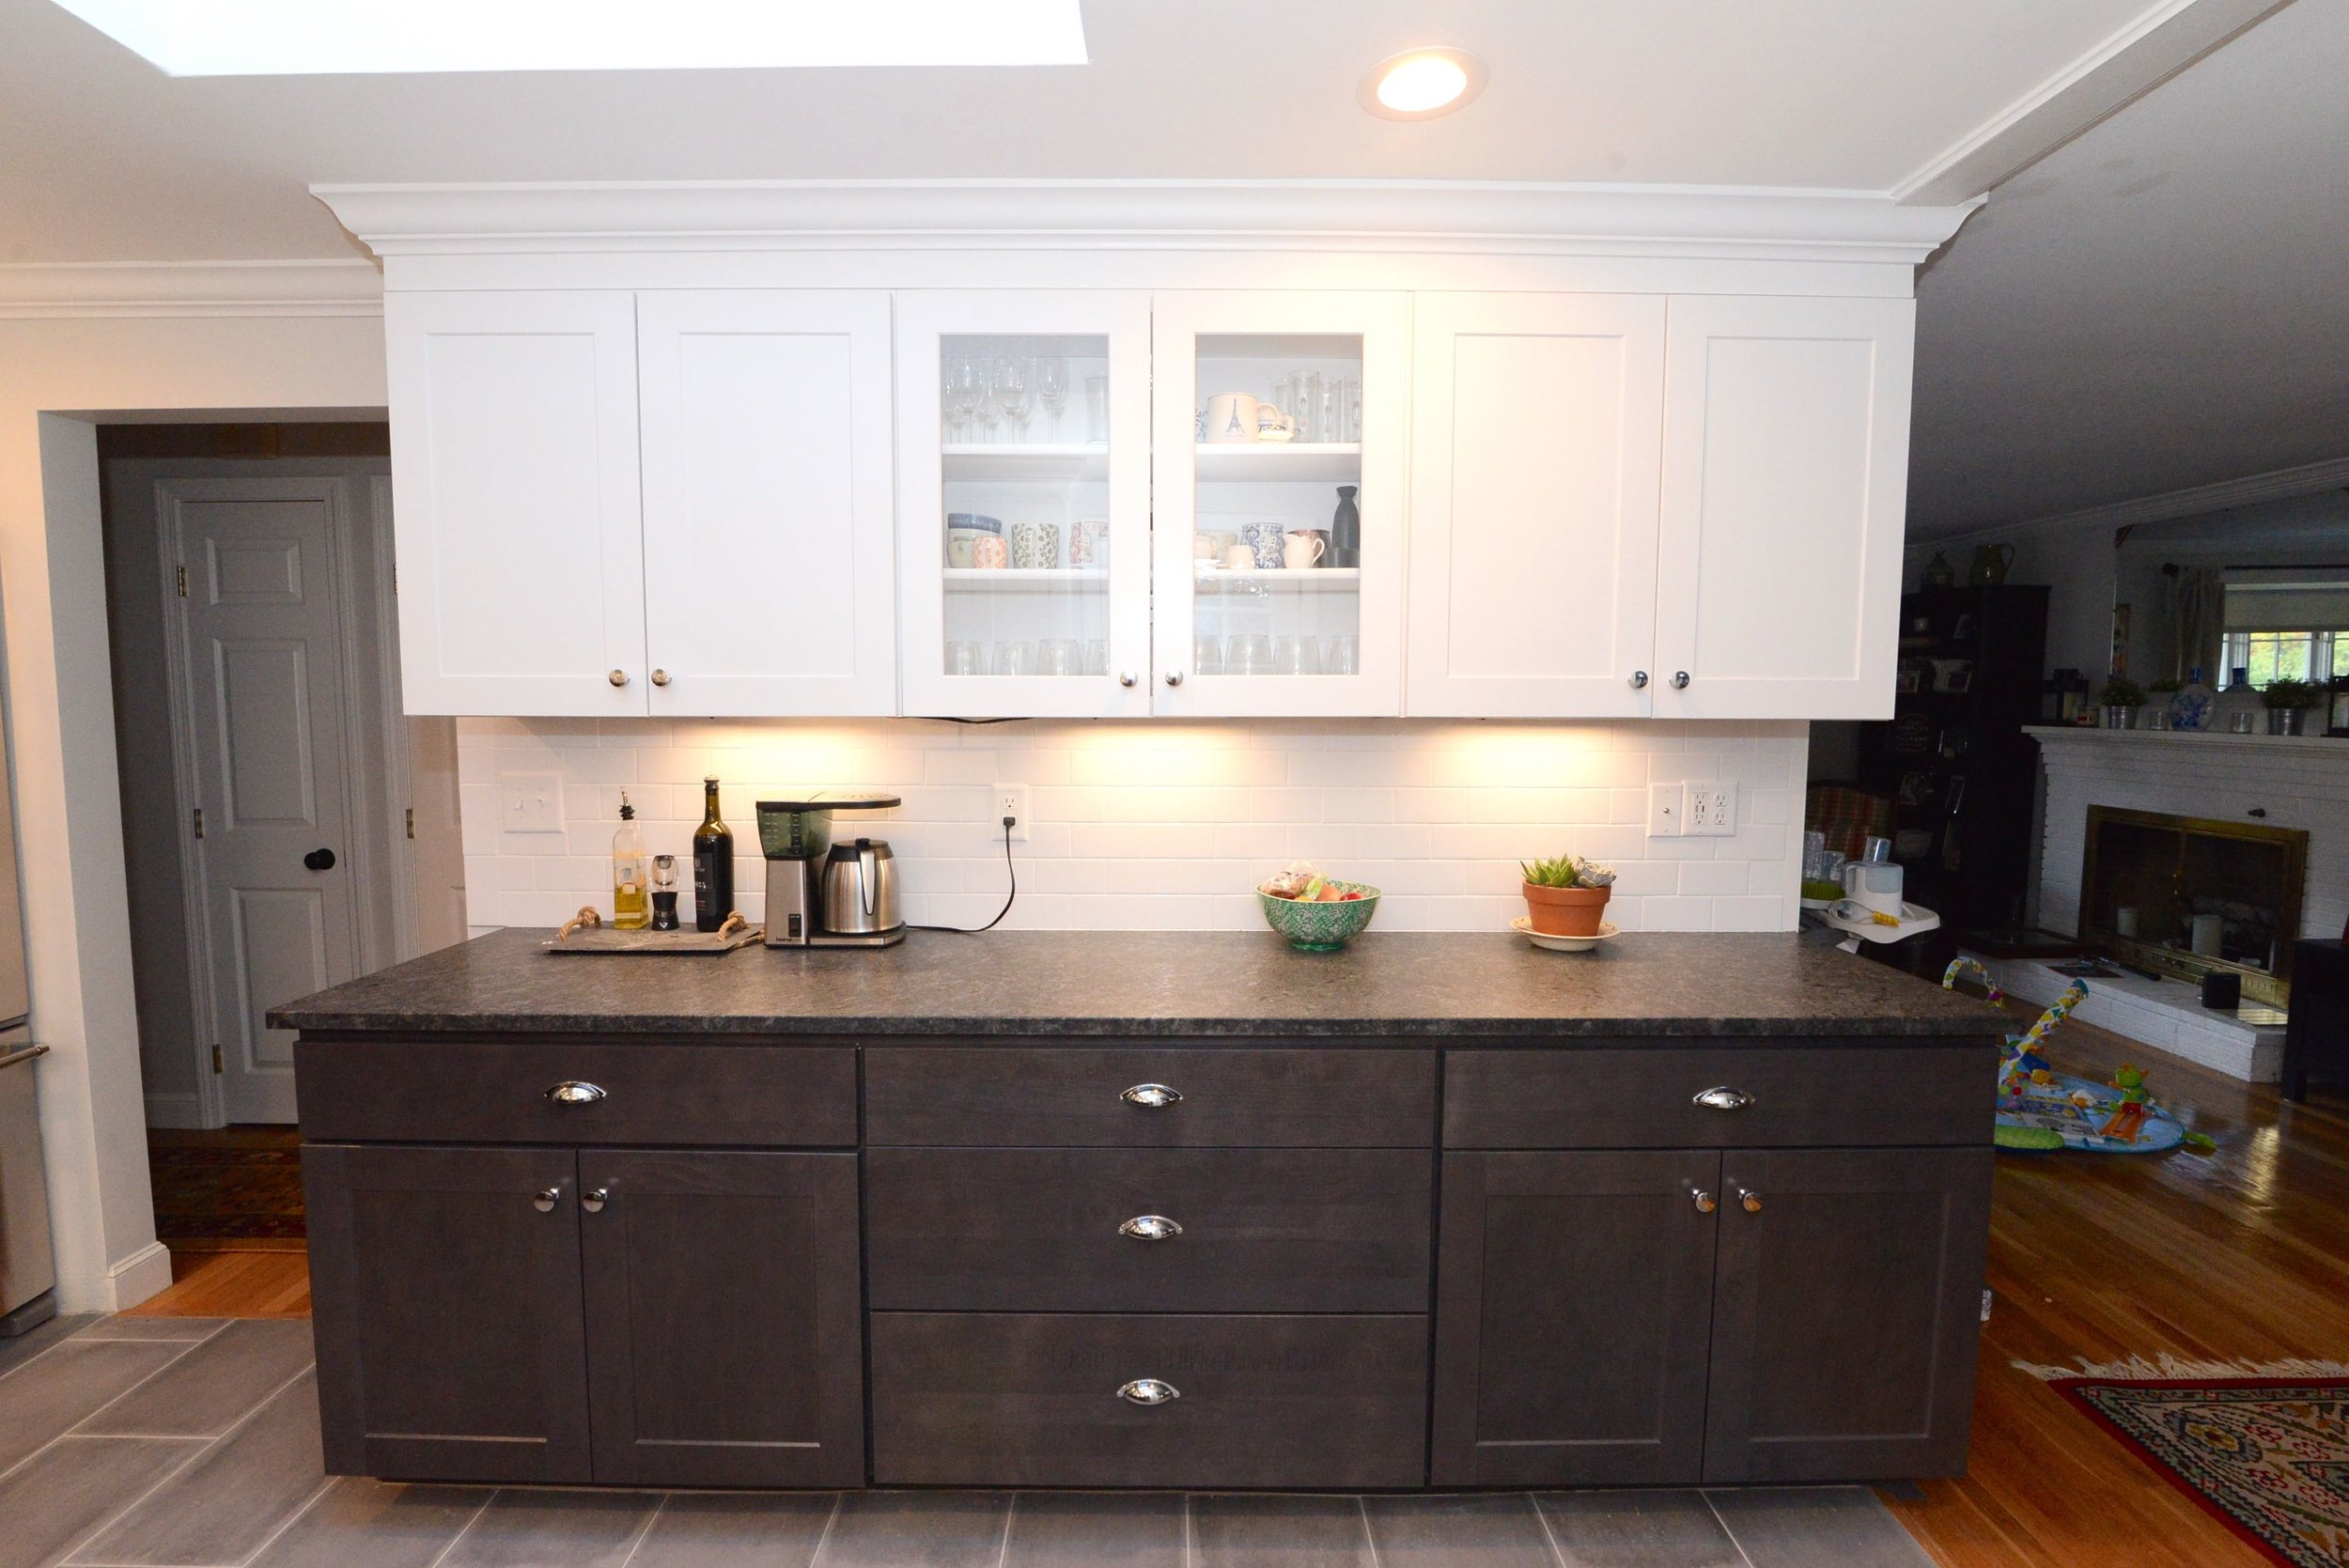 White 3x6 subway tile, Gray washed lowers, Under Cabinet lighting Scoop Pulls, Glass cabinet uppers